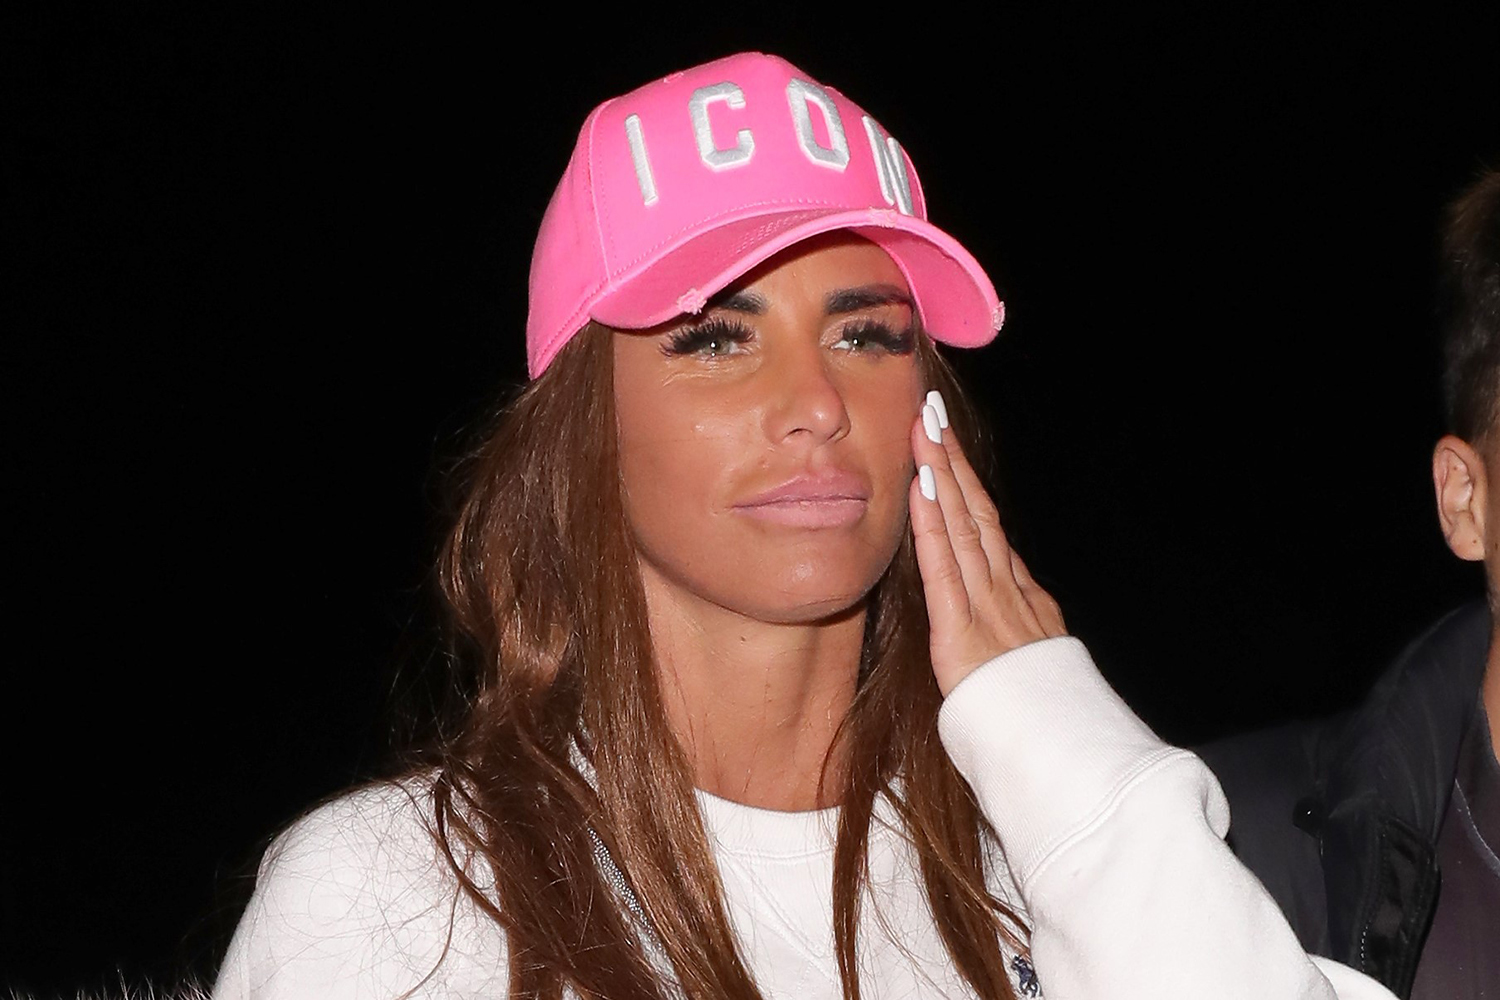 Katie Price pays tribute to her ex-husband Peter Andre on Father's Day